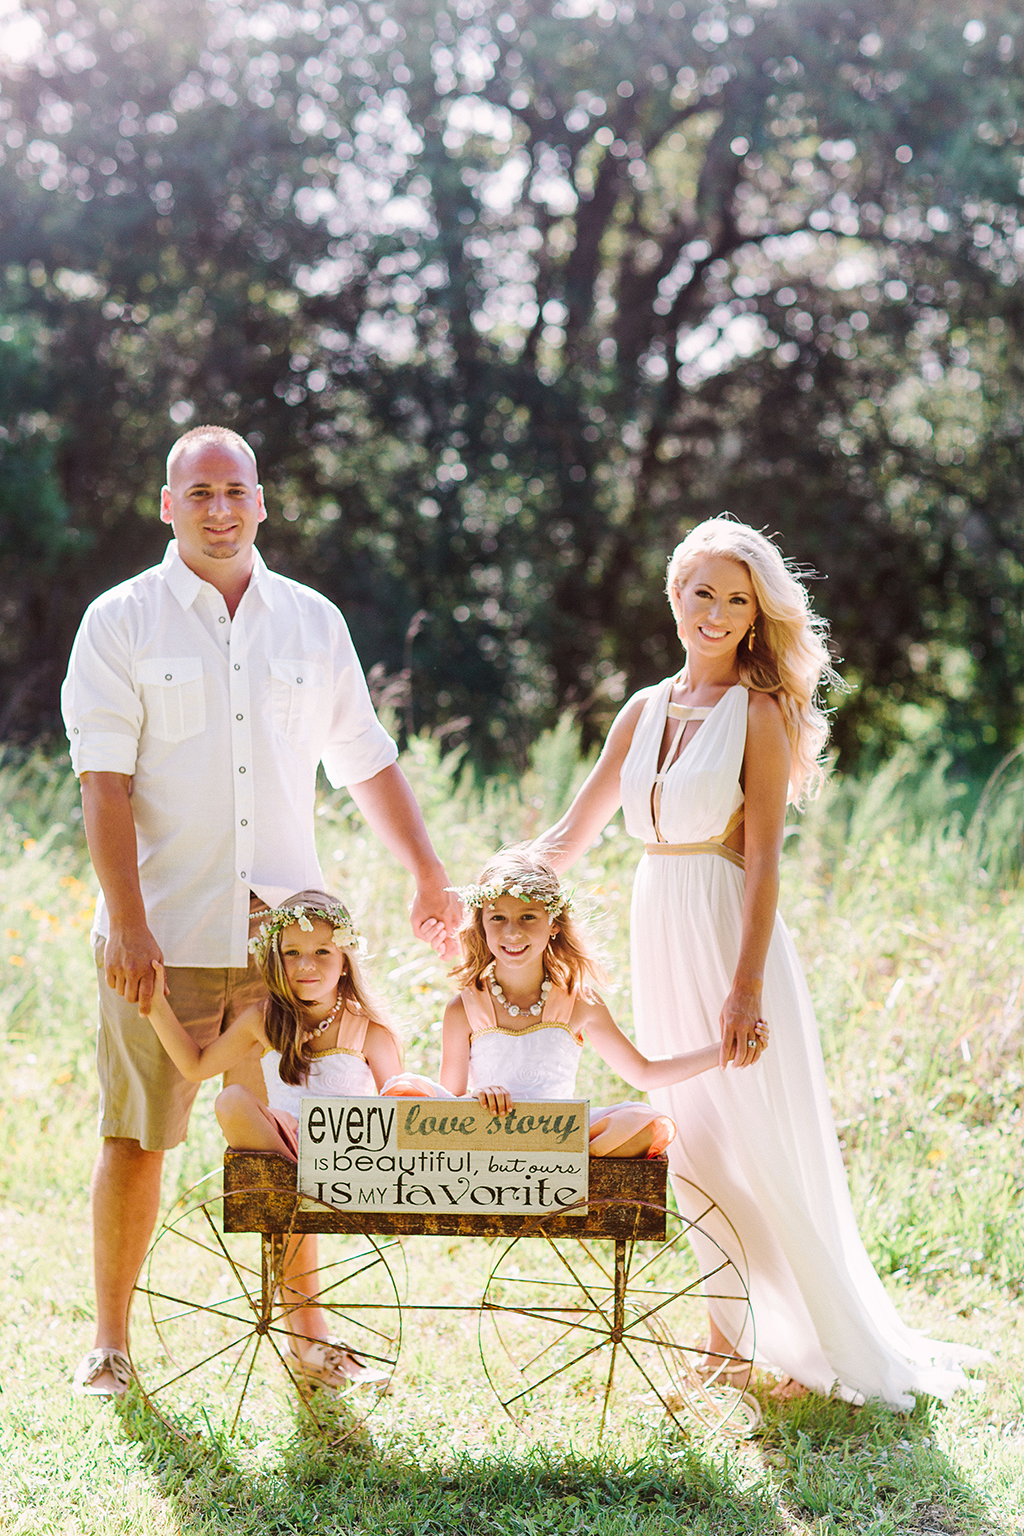 Pitkin-Family-Summer-Session-0400-_-Kristen-Curette-Photography-Edit